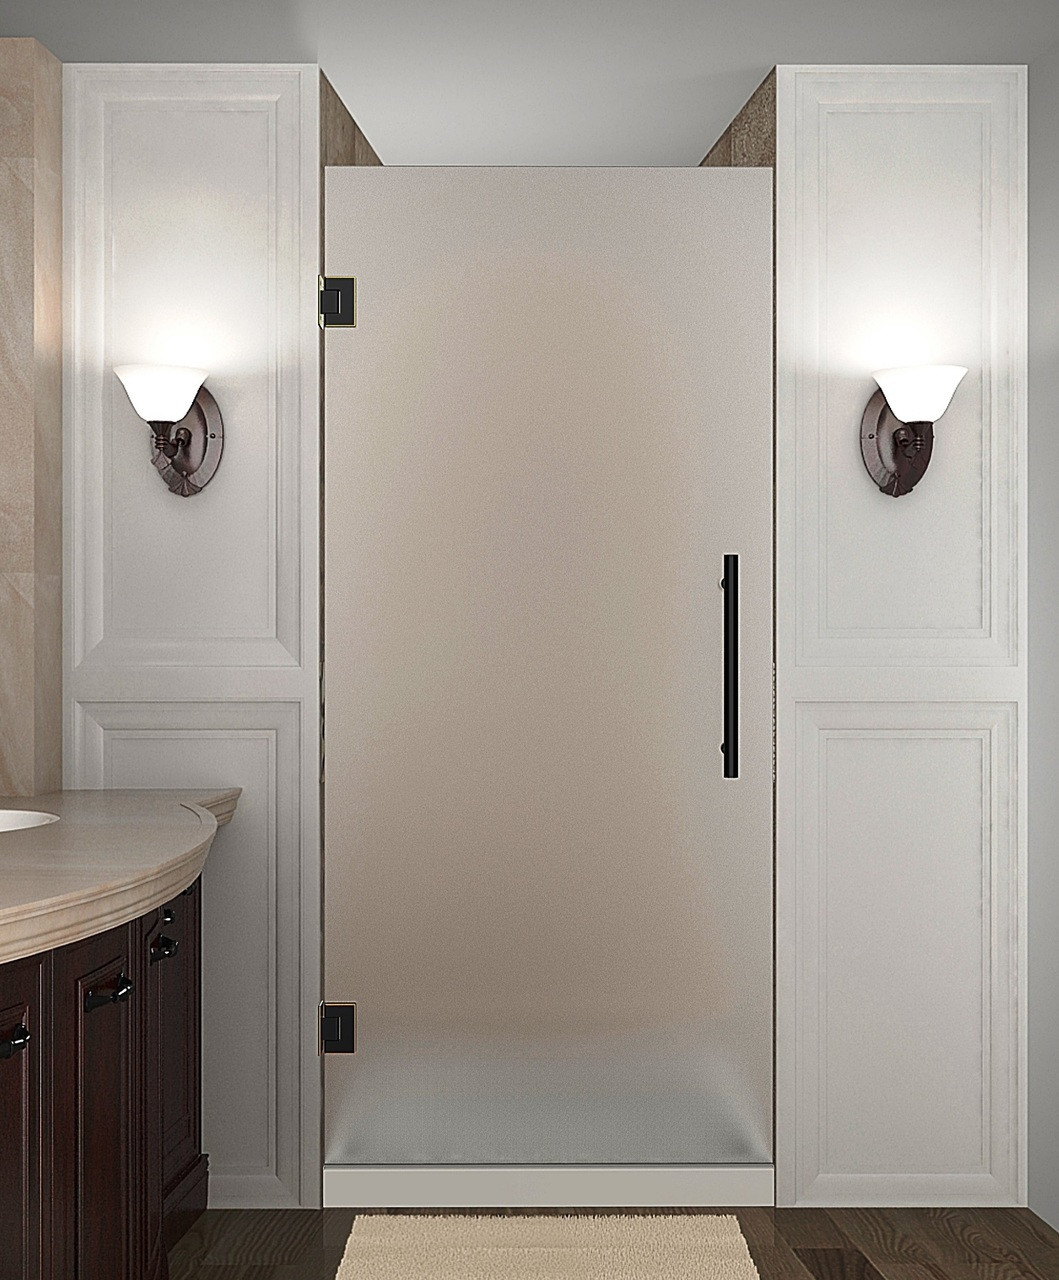 Aston SDR995F-ORB-34-10 34 In x 72 In Frosted Glass Hinged Shower Door In Oil Rubbed Bronze